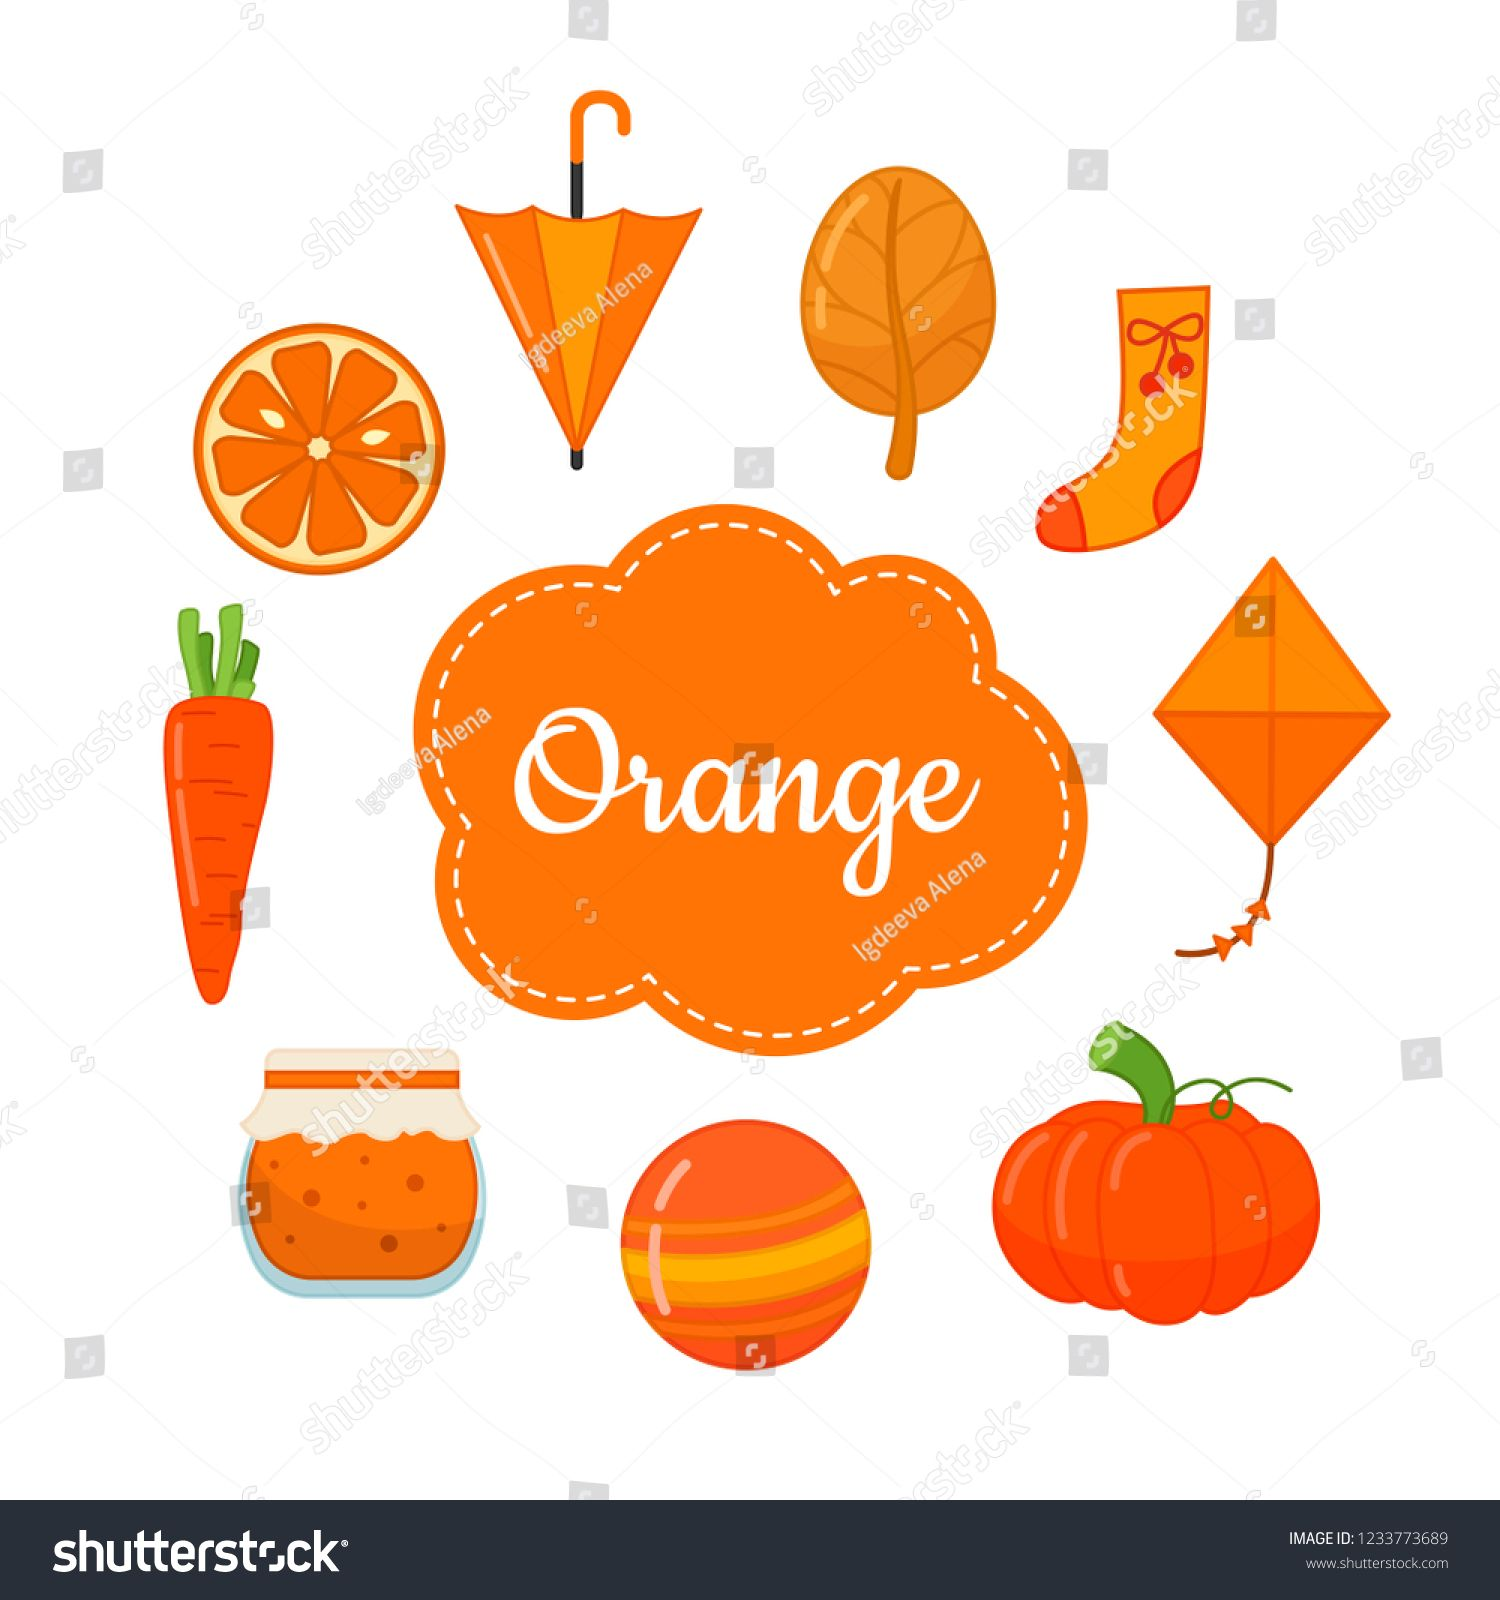 Learn The Primary Colors Orange Different Objects In